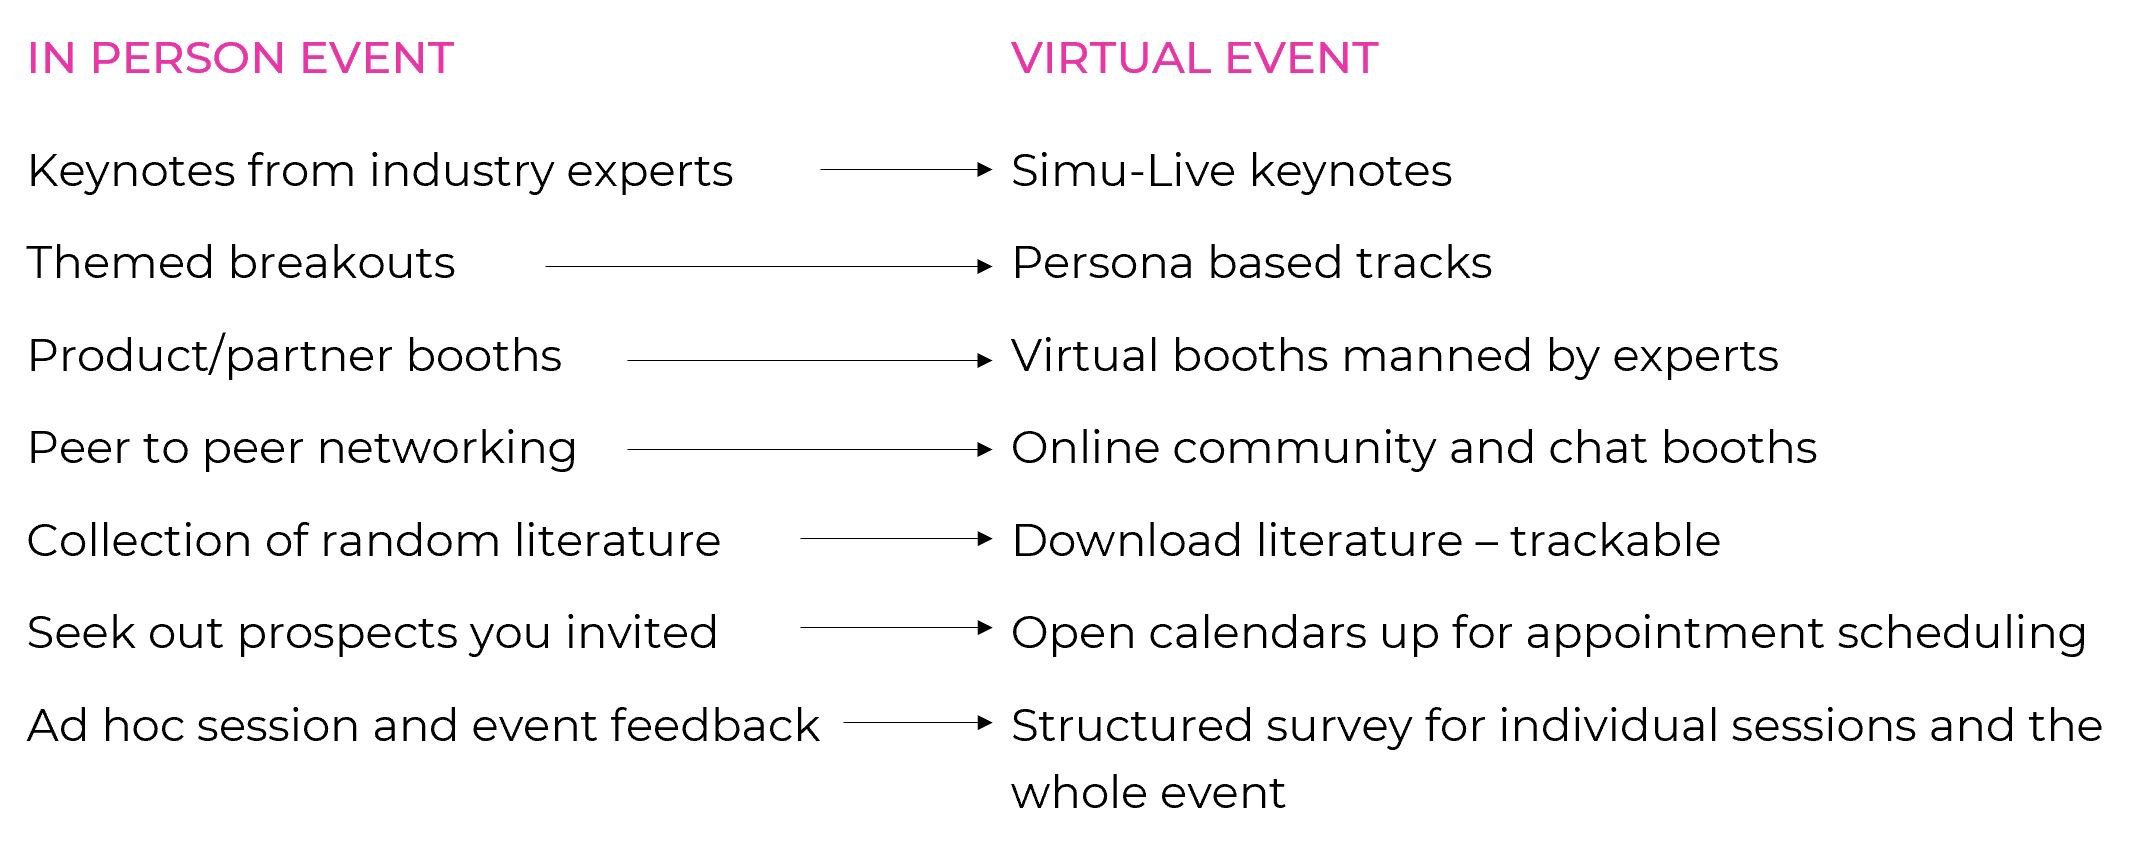 In-Person vs Virtual Event Experience